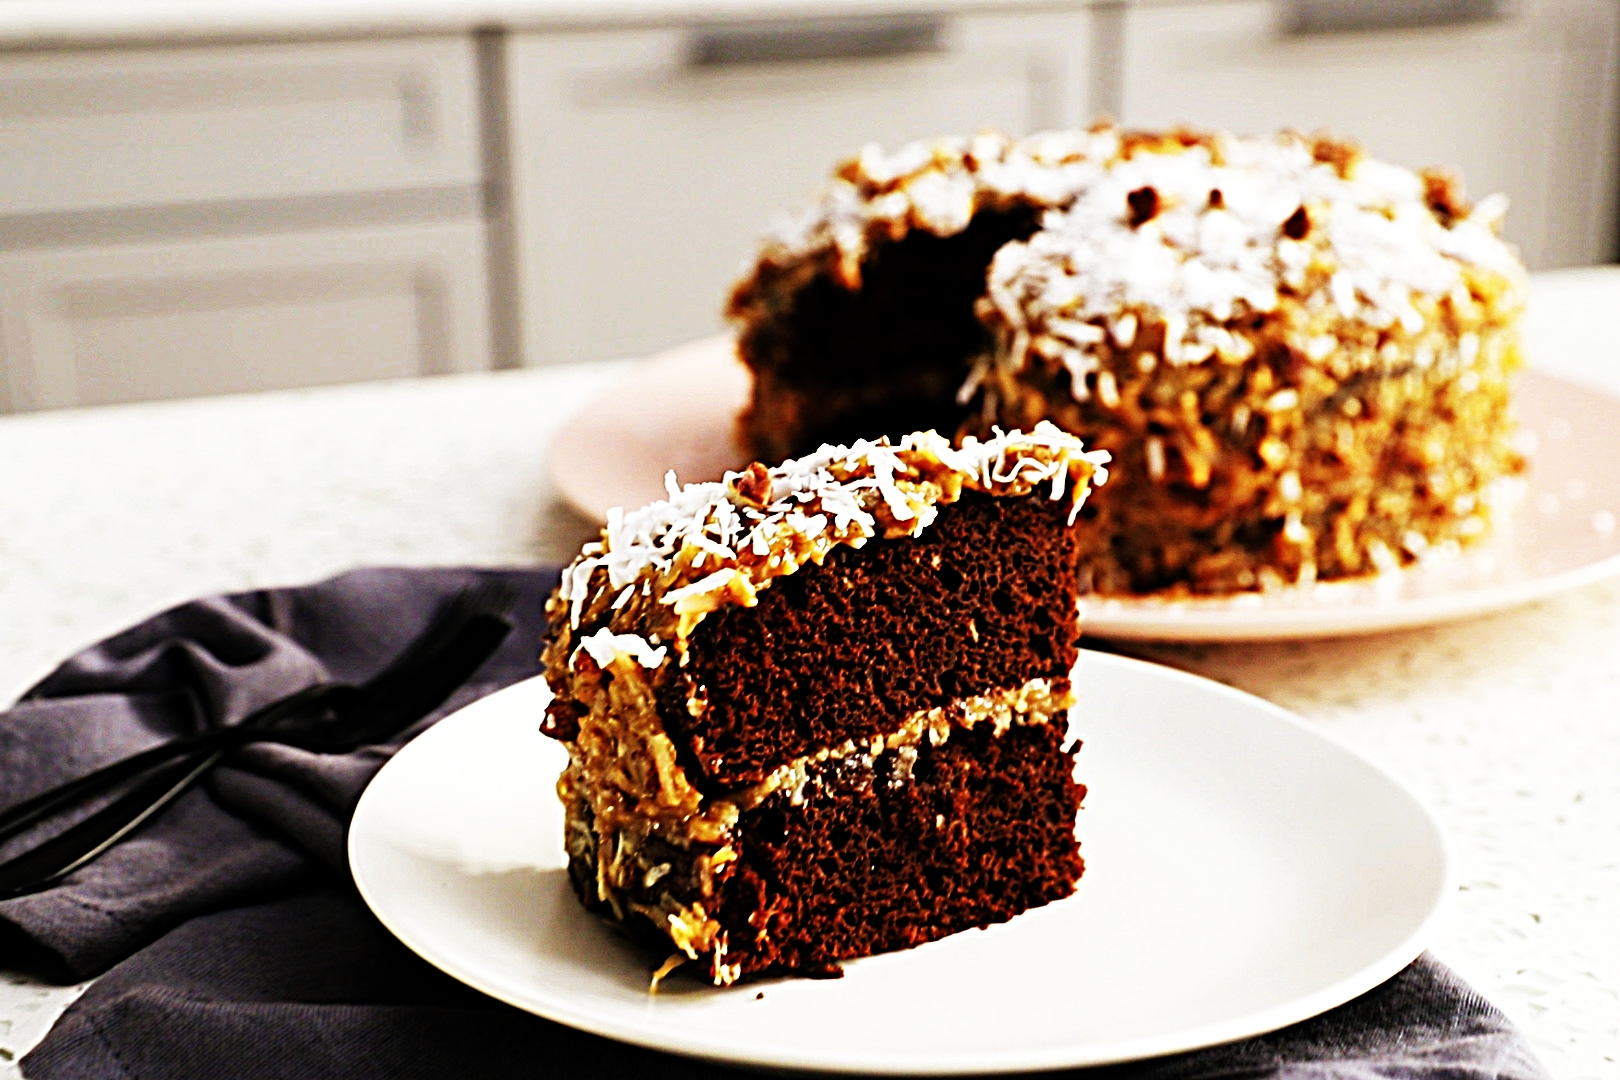 Stupid-Easy Recipe for Buttermilk German Chocolate Cake (#1 Top-Rated)